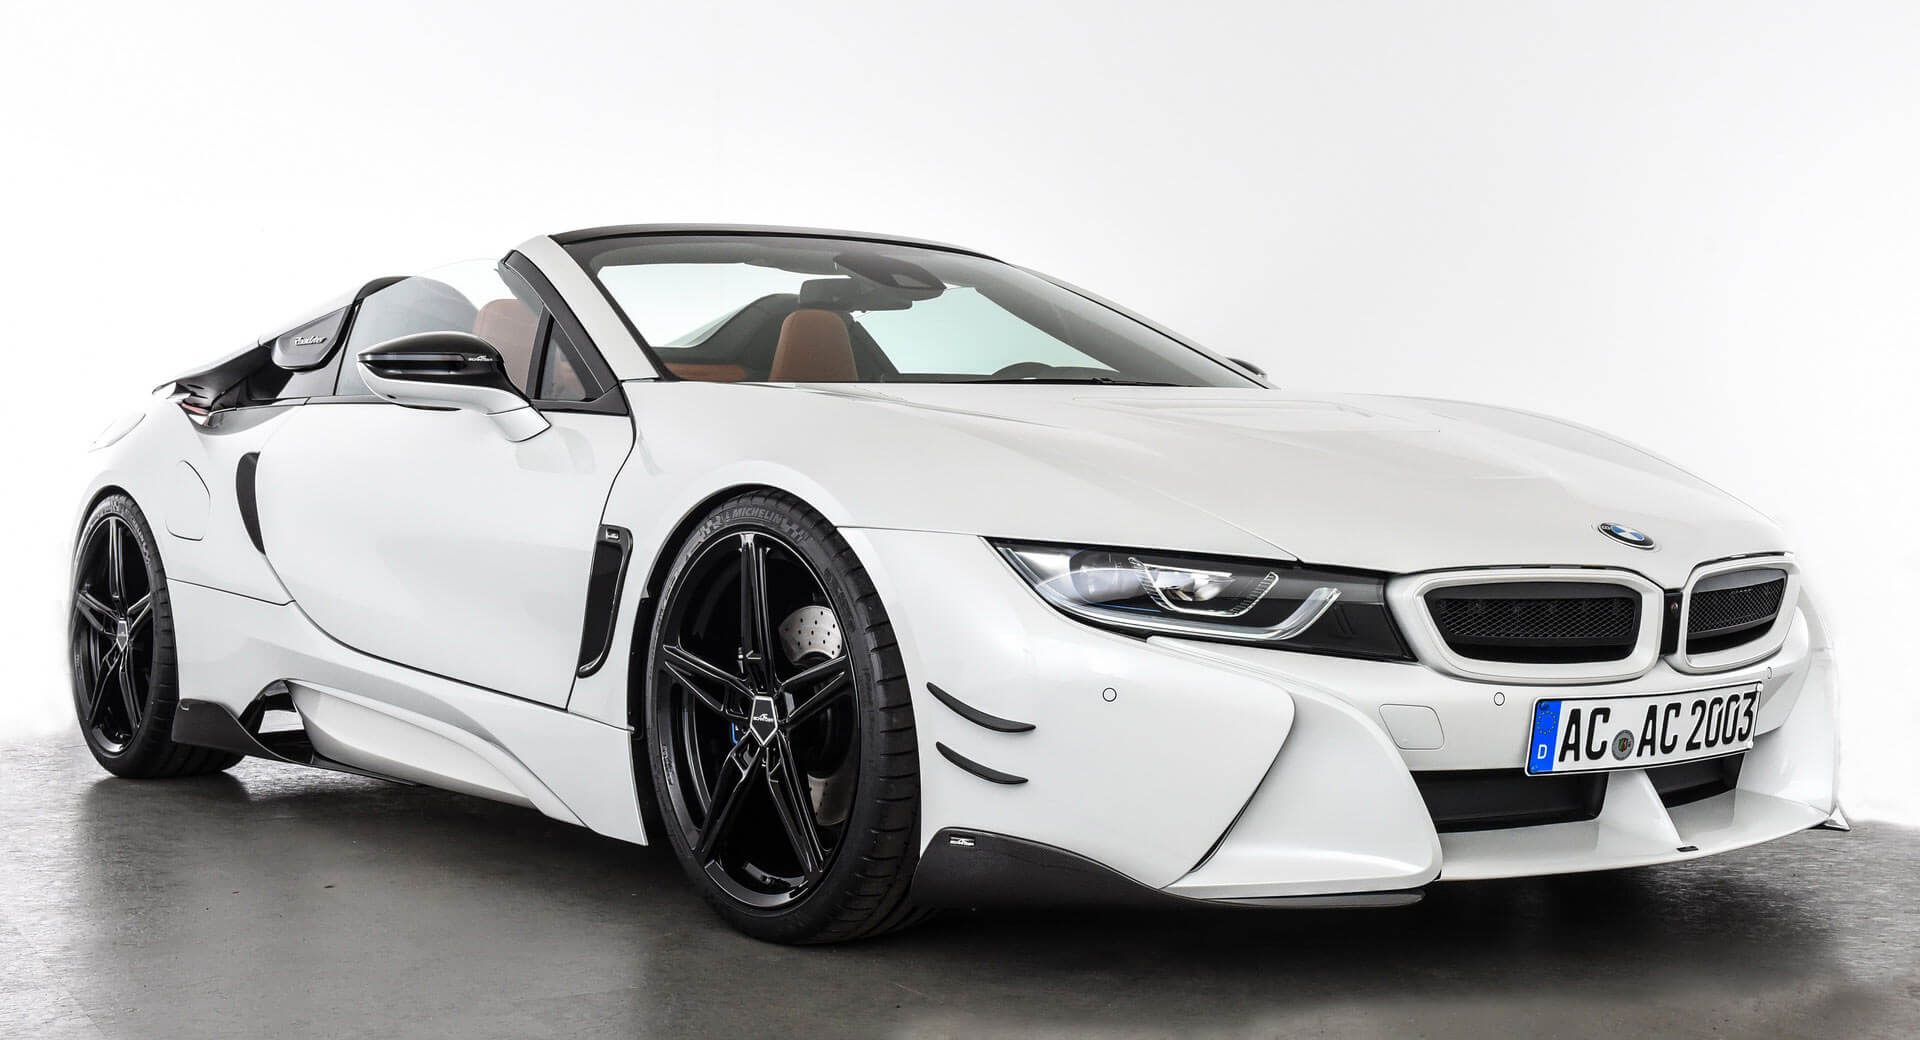 Ac Schnitzer Helps New Bmw I8 Roadster Improve Its Stance Carscoops Expensive Sports Cars Bmw I8 Bmw